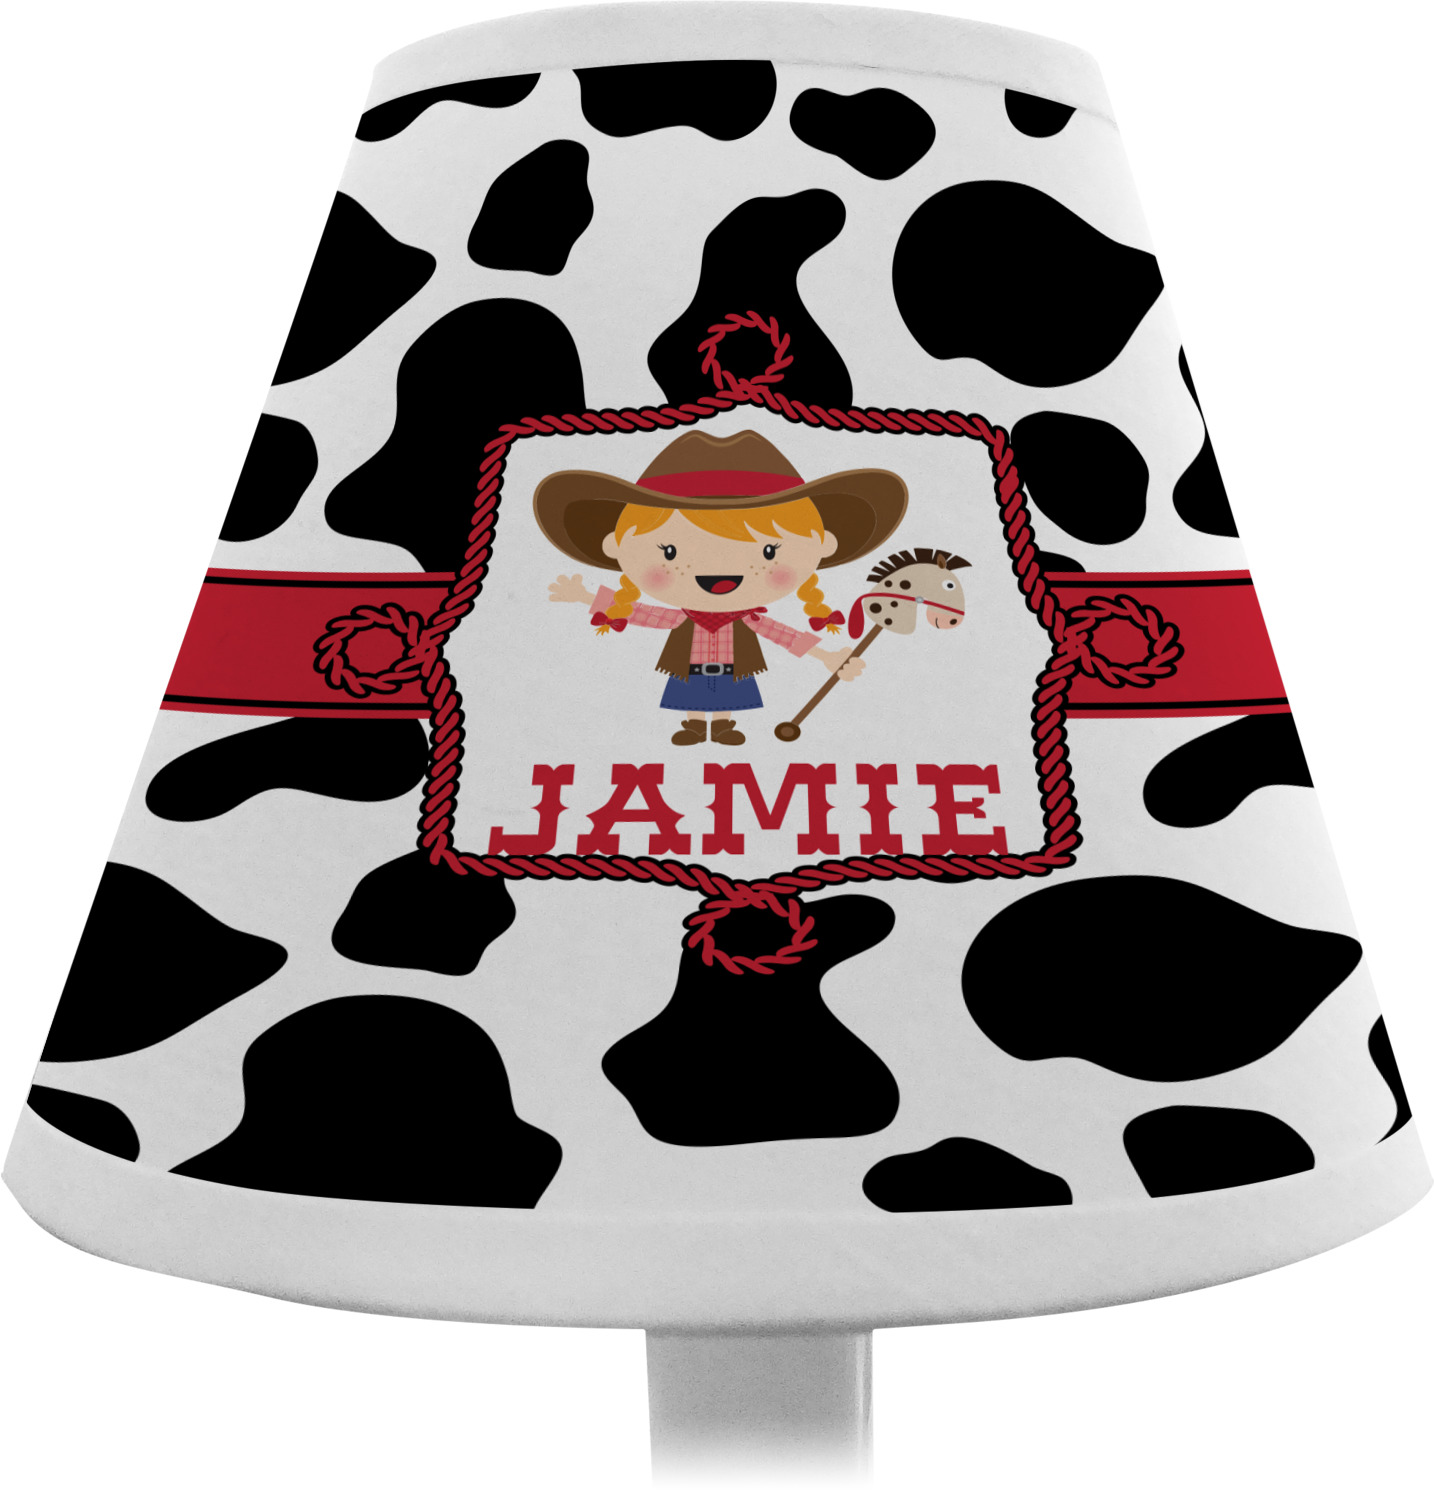 Cowprint Cowgirl Chandelier Lamp Shade (Personalized) - YouCustomizeIt